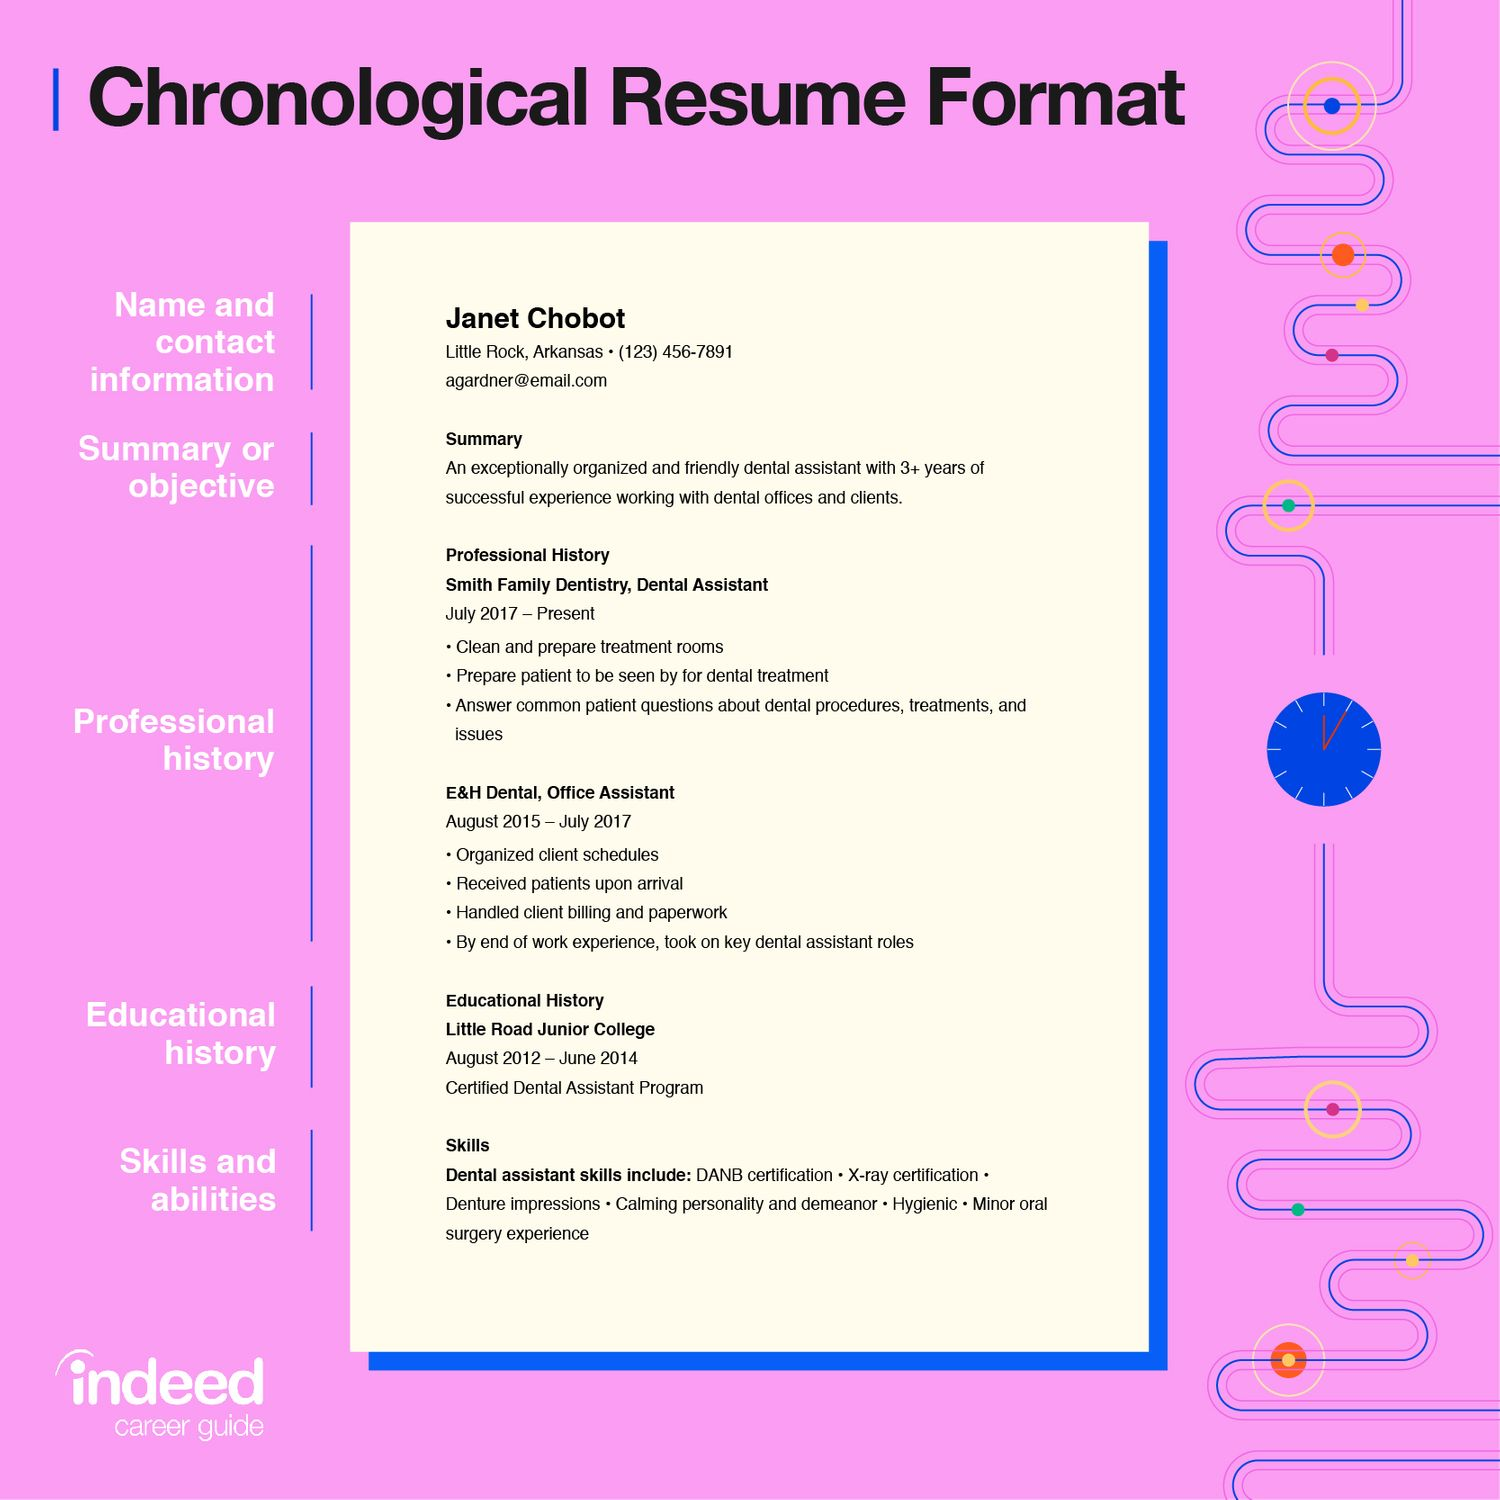 chronological resume tips and examples indeed professional template resized political Resume Professional Chronological Resume Template